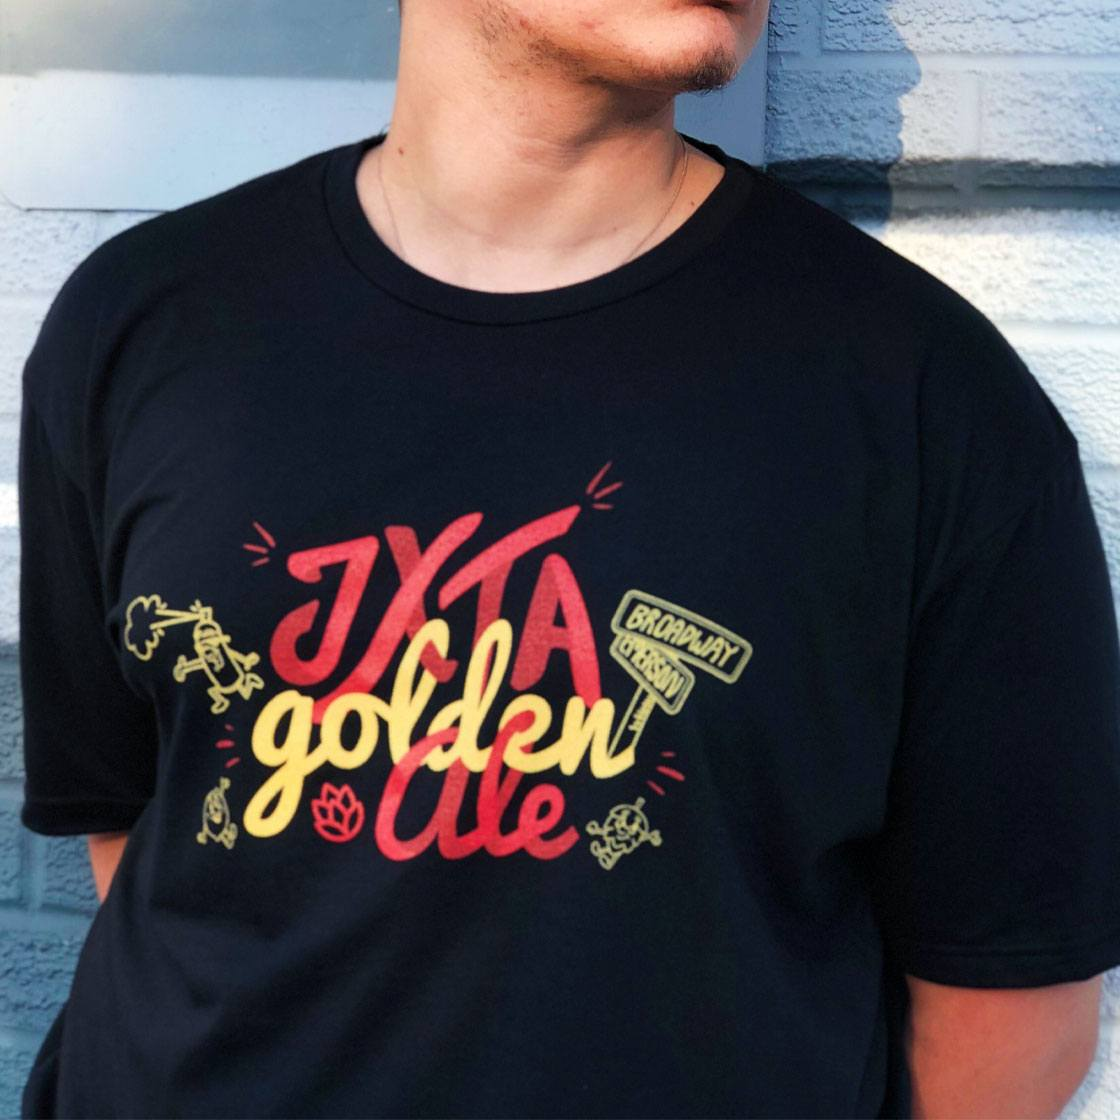 Someone posing wearing a t shirt with a graphically illustrated logo JXTA Golden Ale